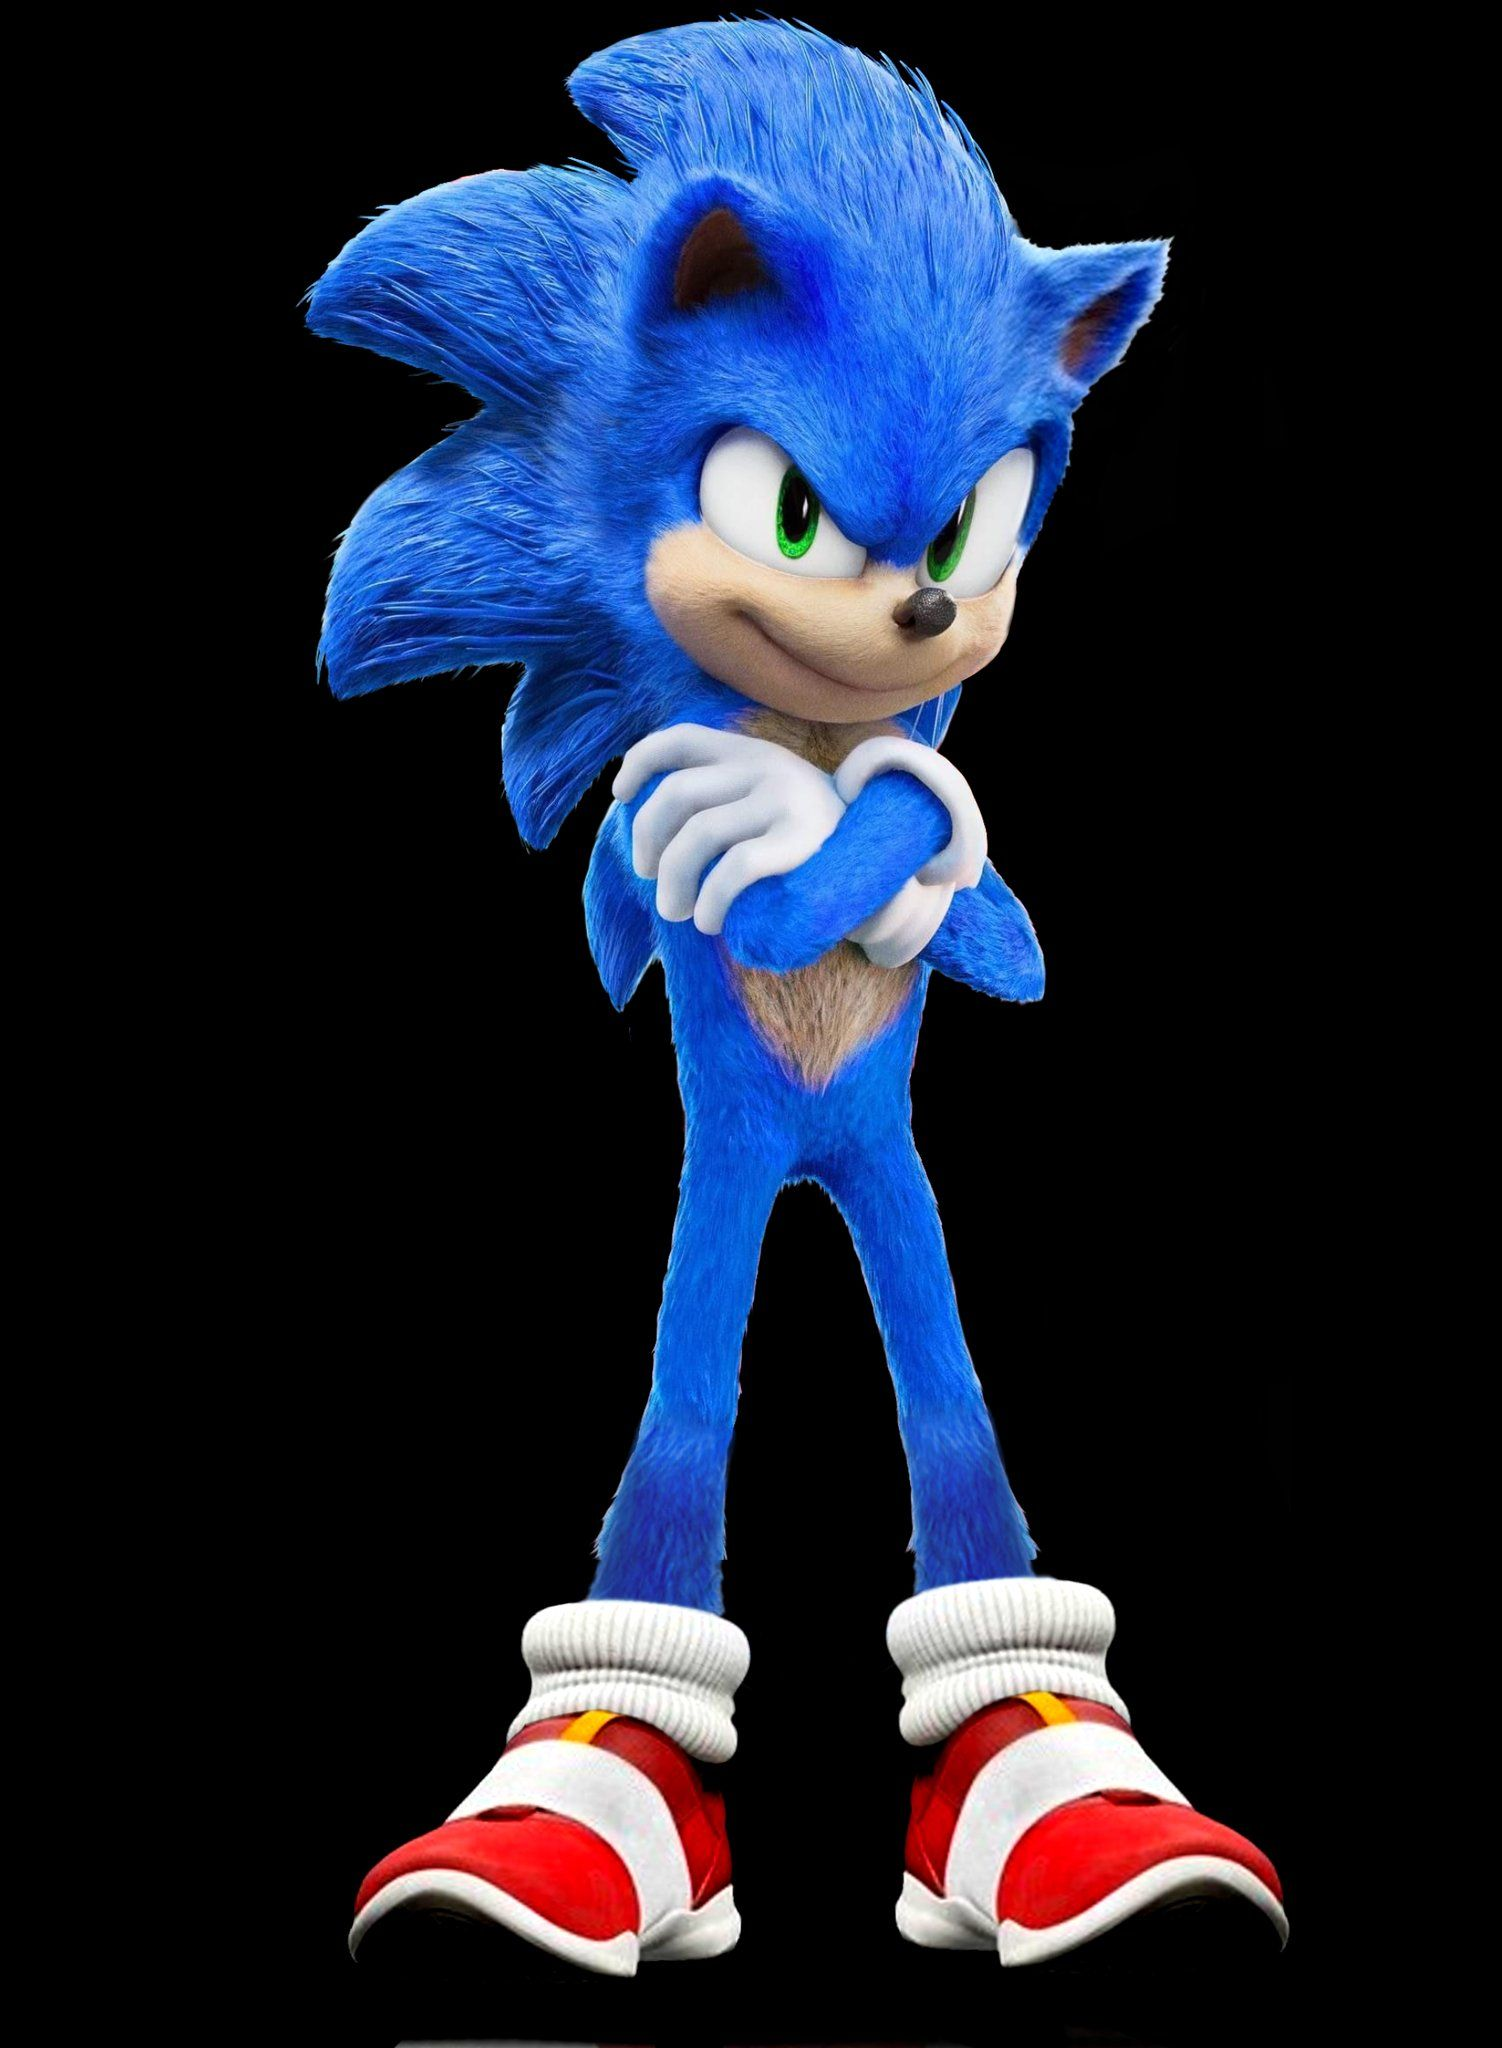 Artysei 🅙 on in 2020 (With images) Sonic heroes, Sonic